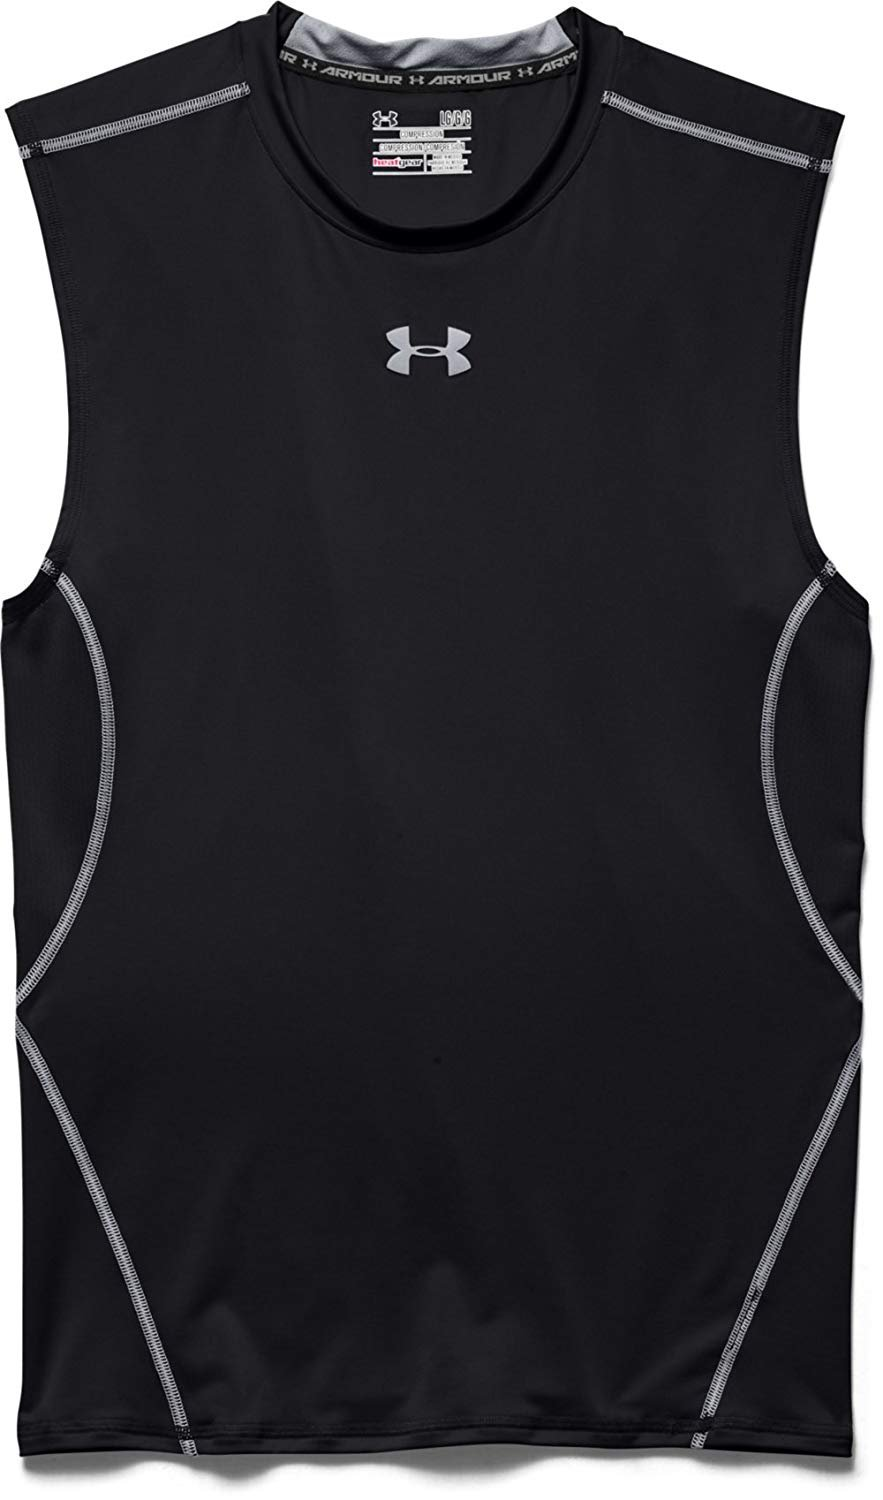 18e85f19d 1257469 - Under Armour 1257469 Men's Black UA HeatGear Sleeveless  Compression Shirt - 2XL - Walmart.com